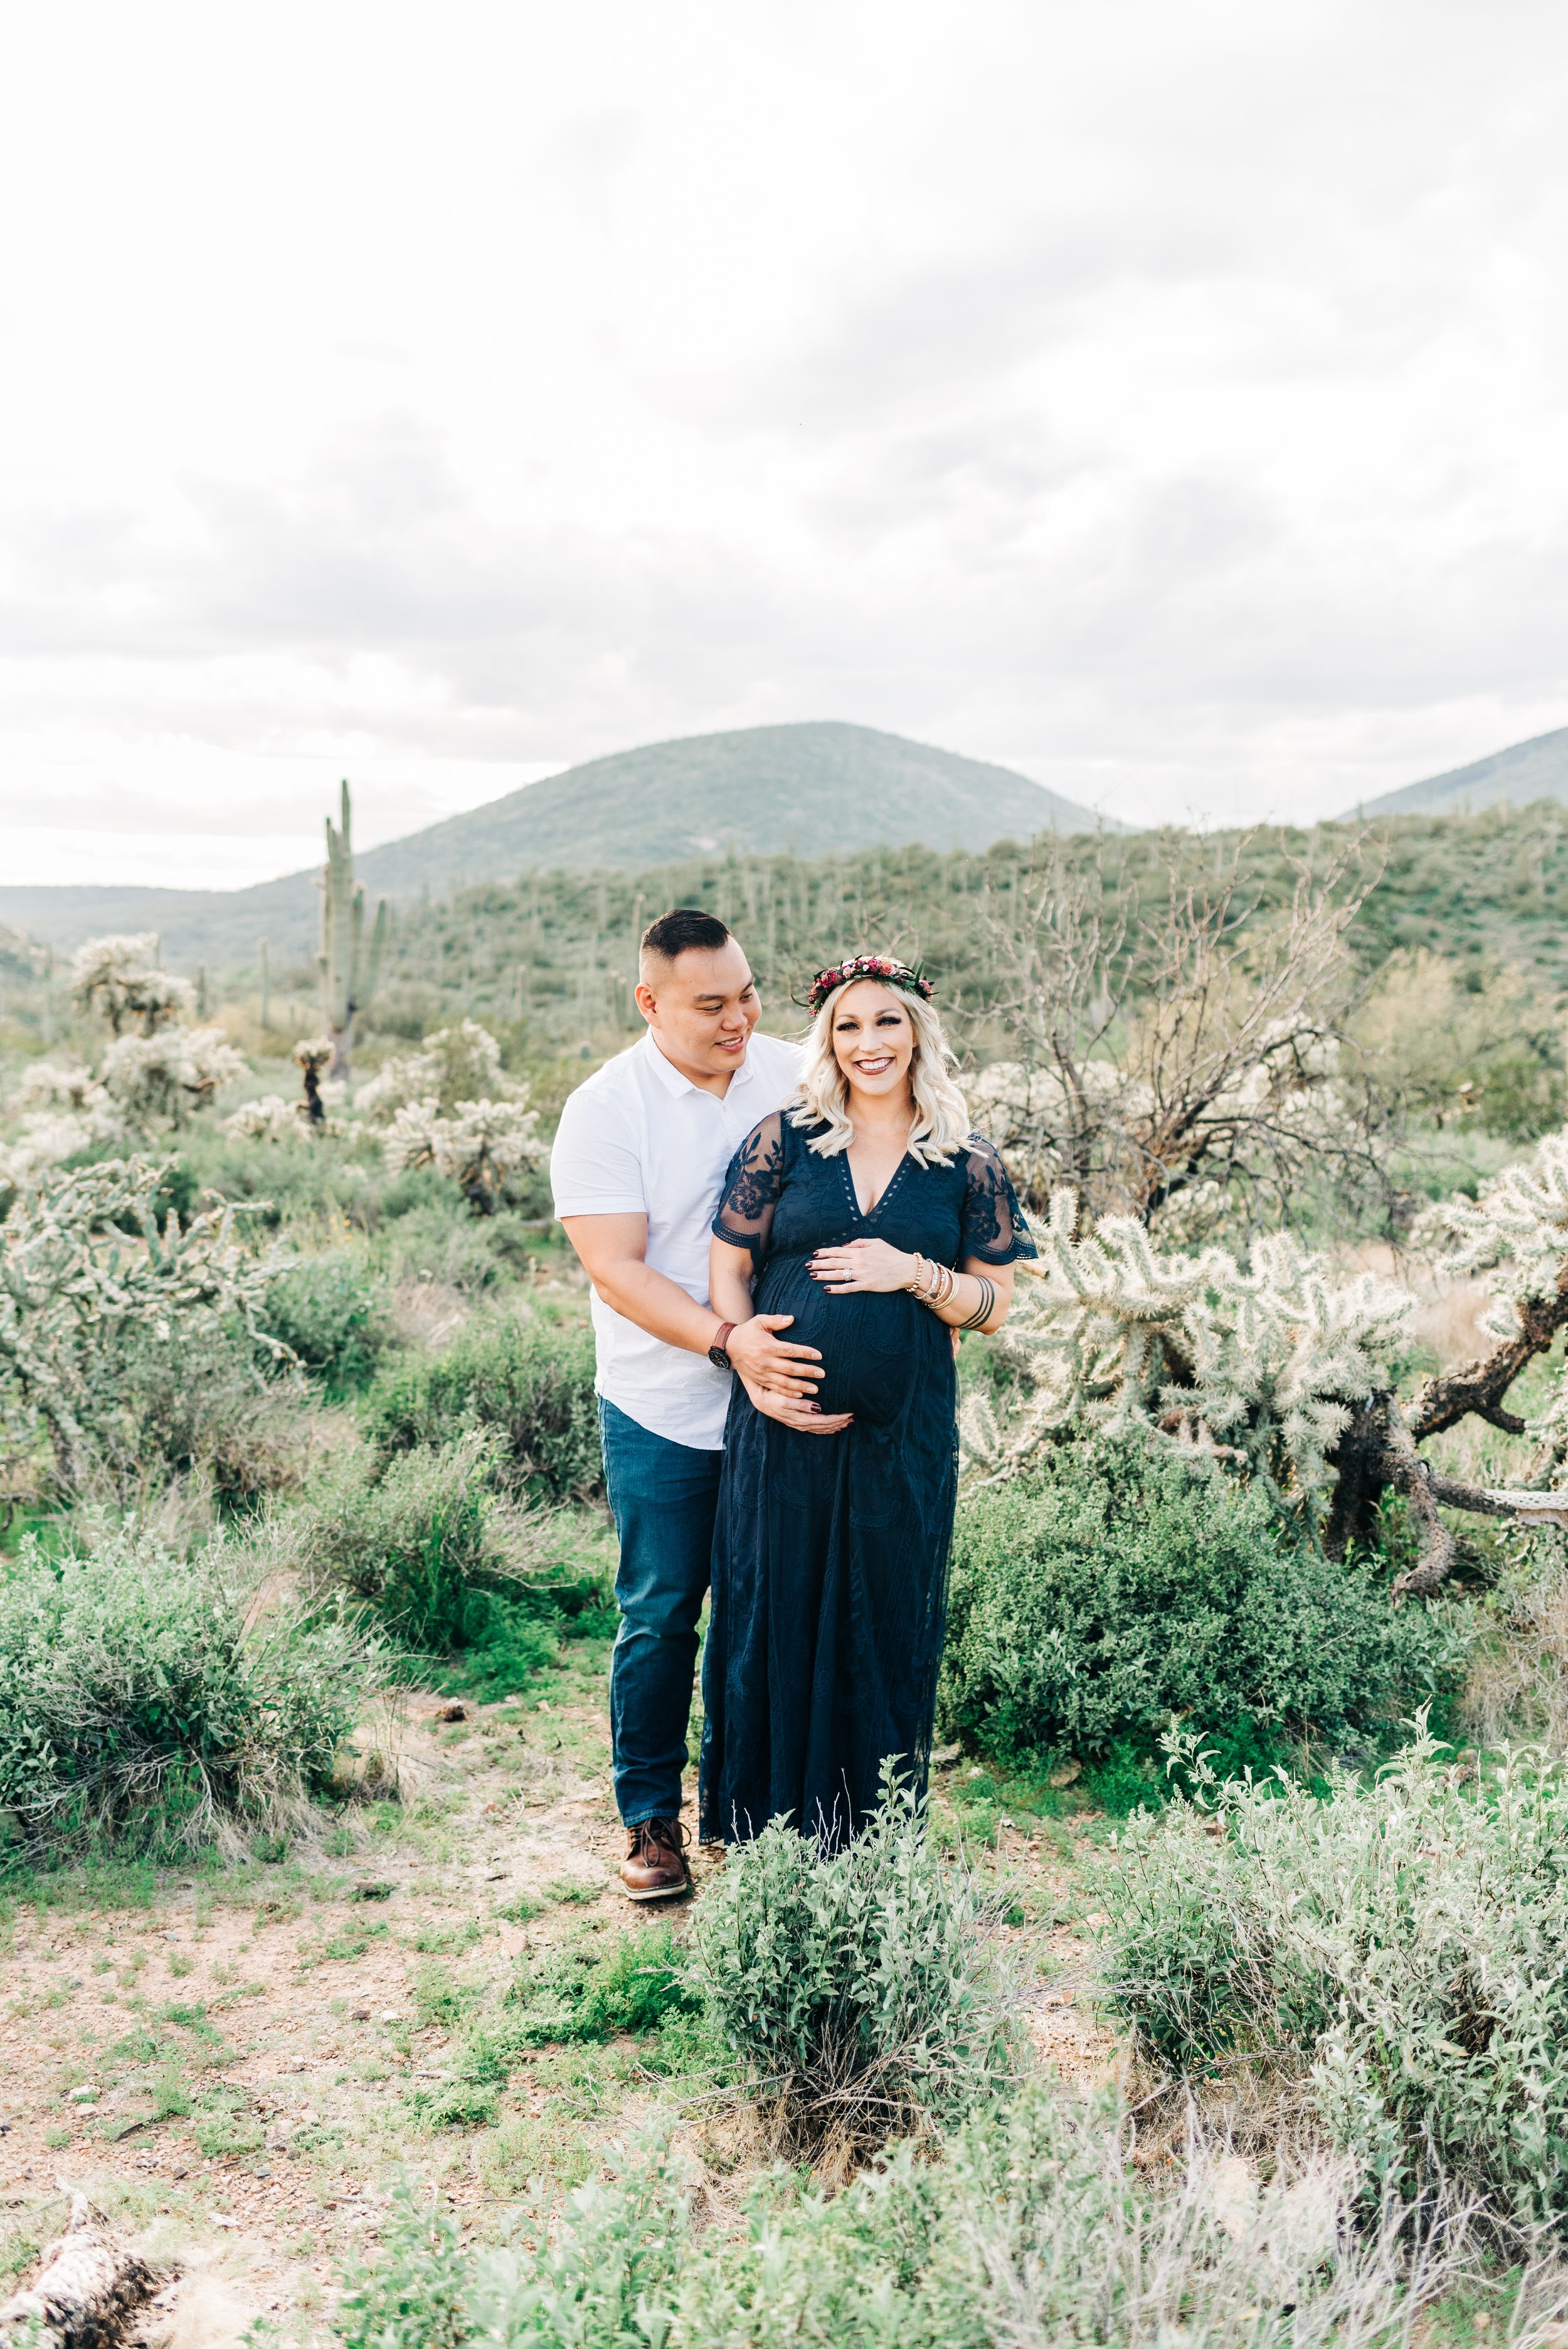 Maternity Session pose idea for mom and dad